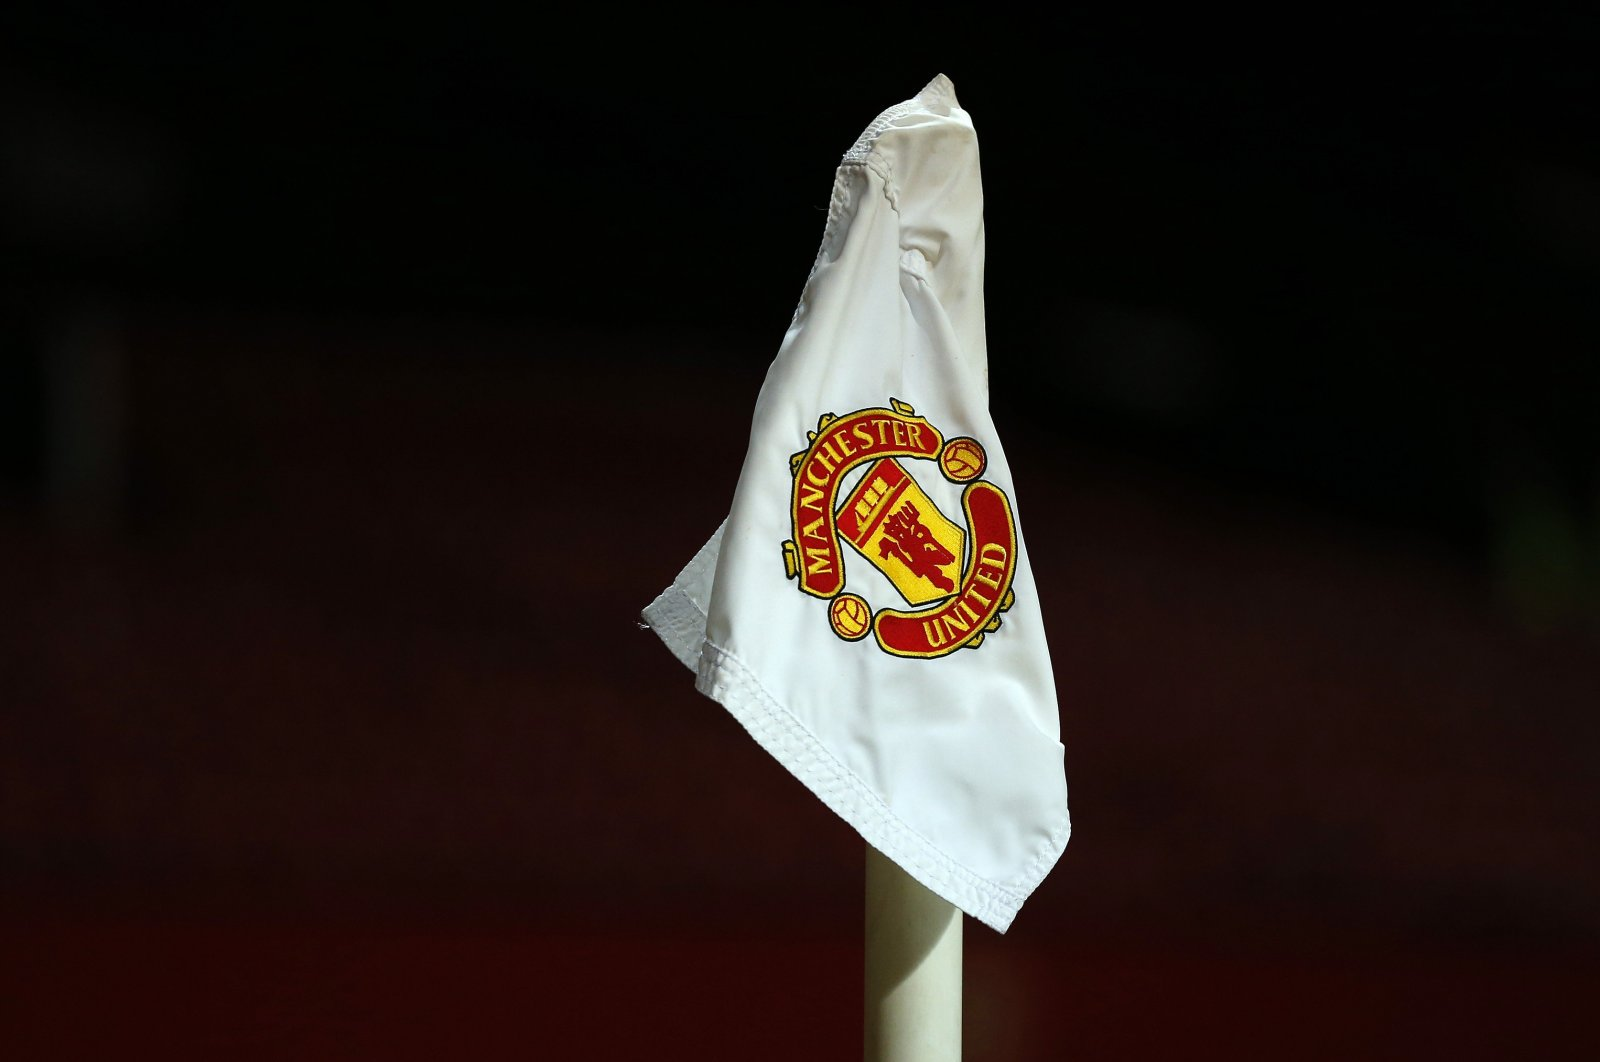 The Manchester United club logo is seen on a corner flag on the Old Trafford pitch ahead of the FA Cup fourth-round replay match against Cambridge United at Old Trafford, Manchester, northern England, Feb. 3, 2015. (Reuters Photo)